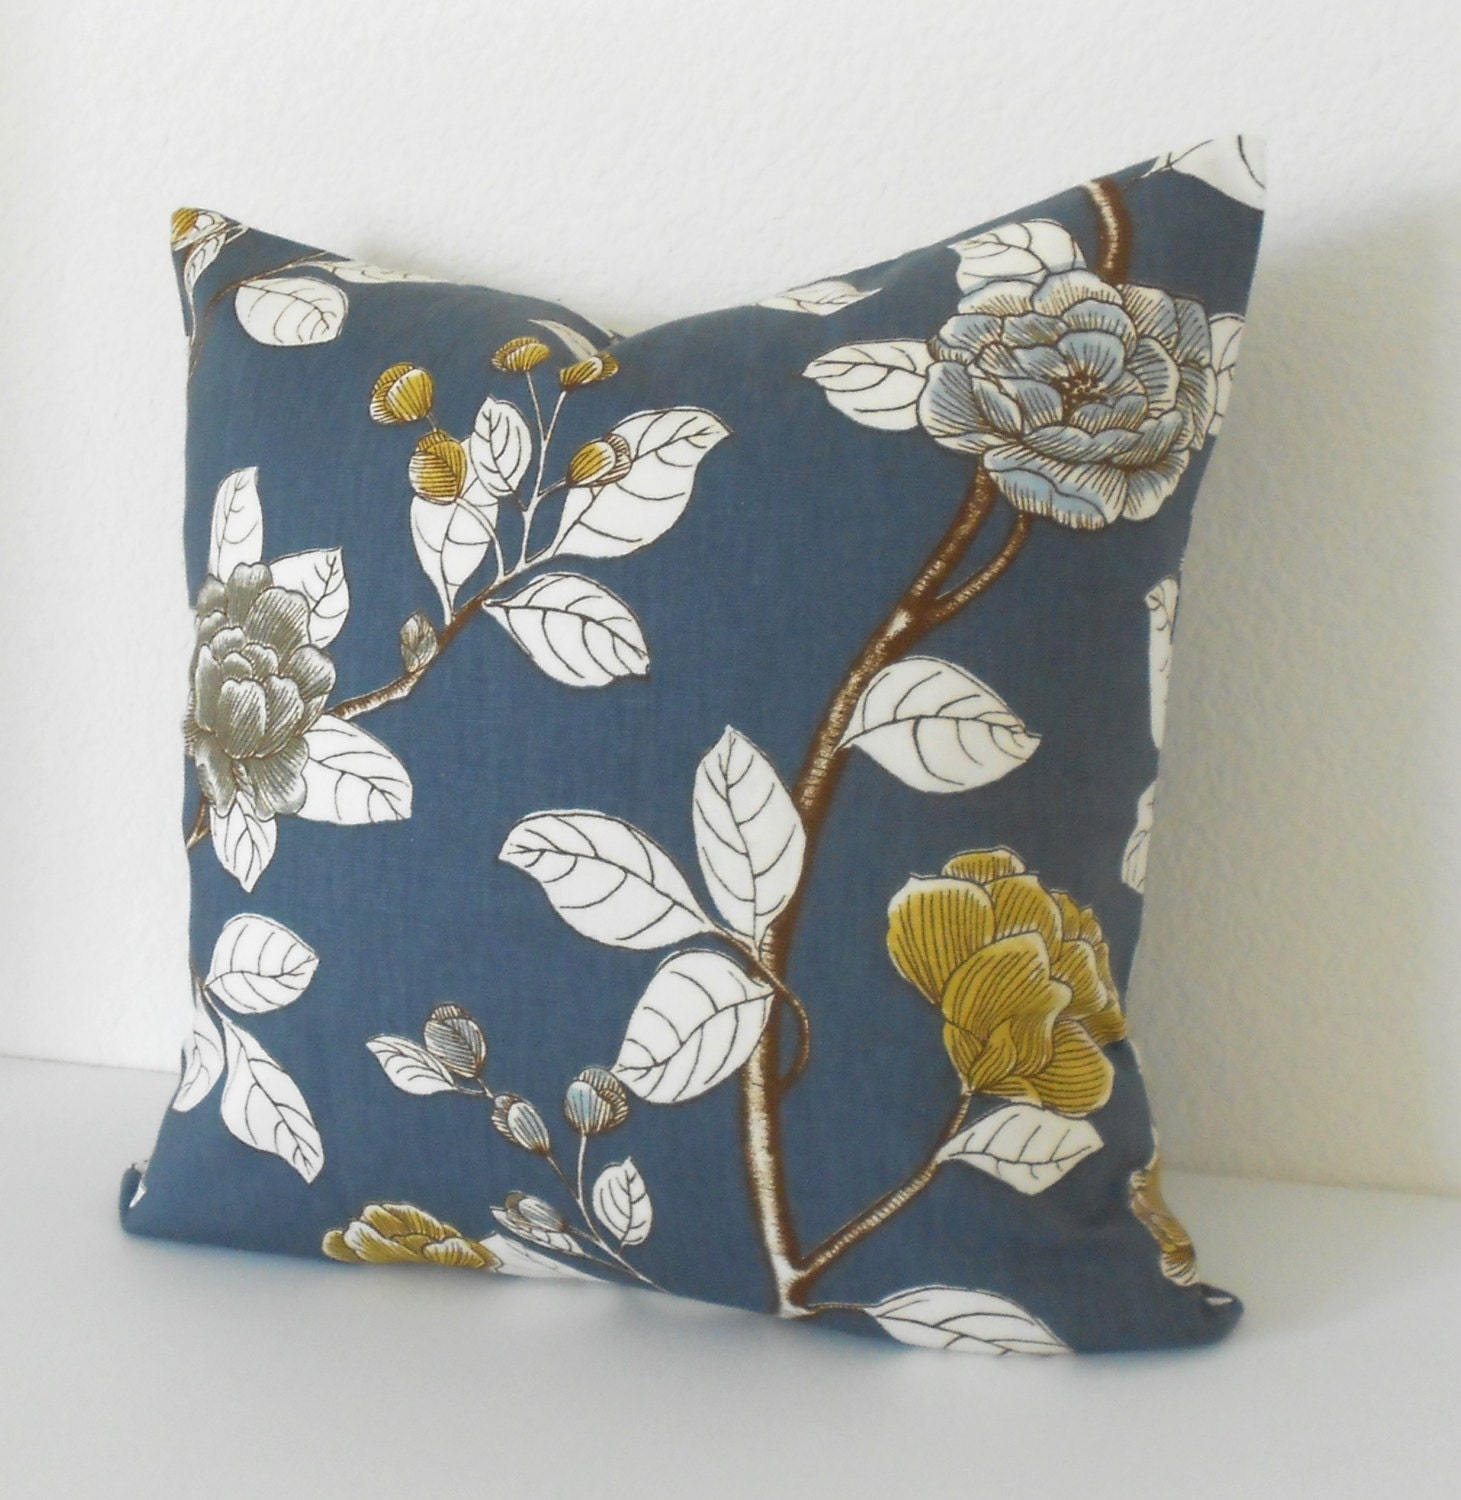 Decorative Pillows Navy : Navy and yellow peony floral decorative pillow cover Dwell